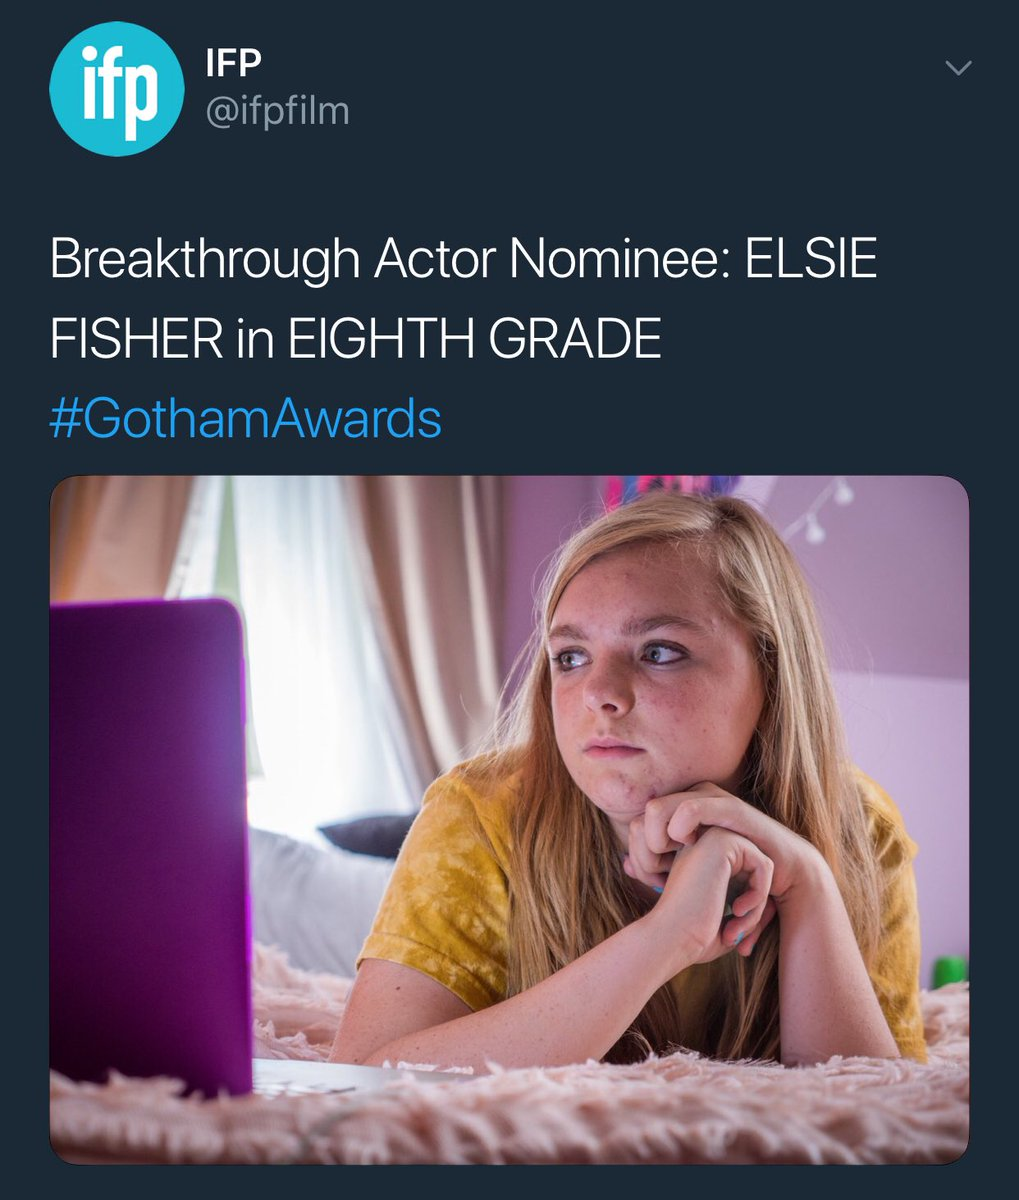 Incredibly honored to be nominated for a Gotham Award along with the legend @ElsieKFisher. We're soaring! Flying, even!